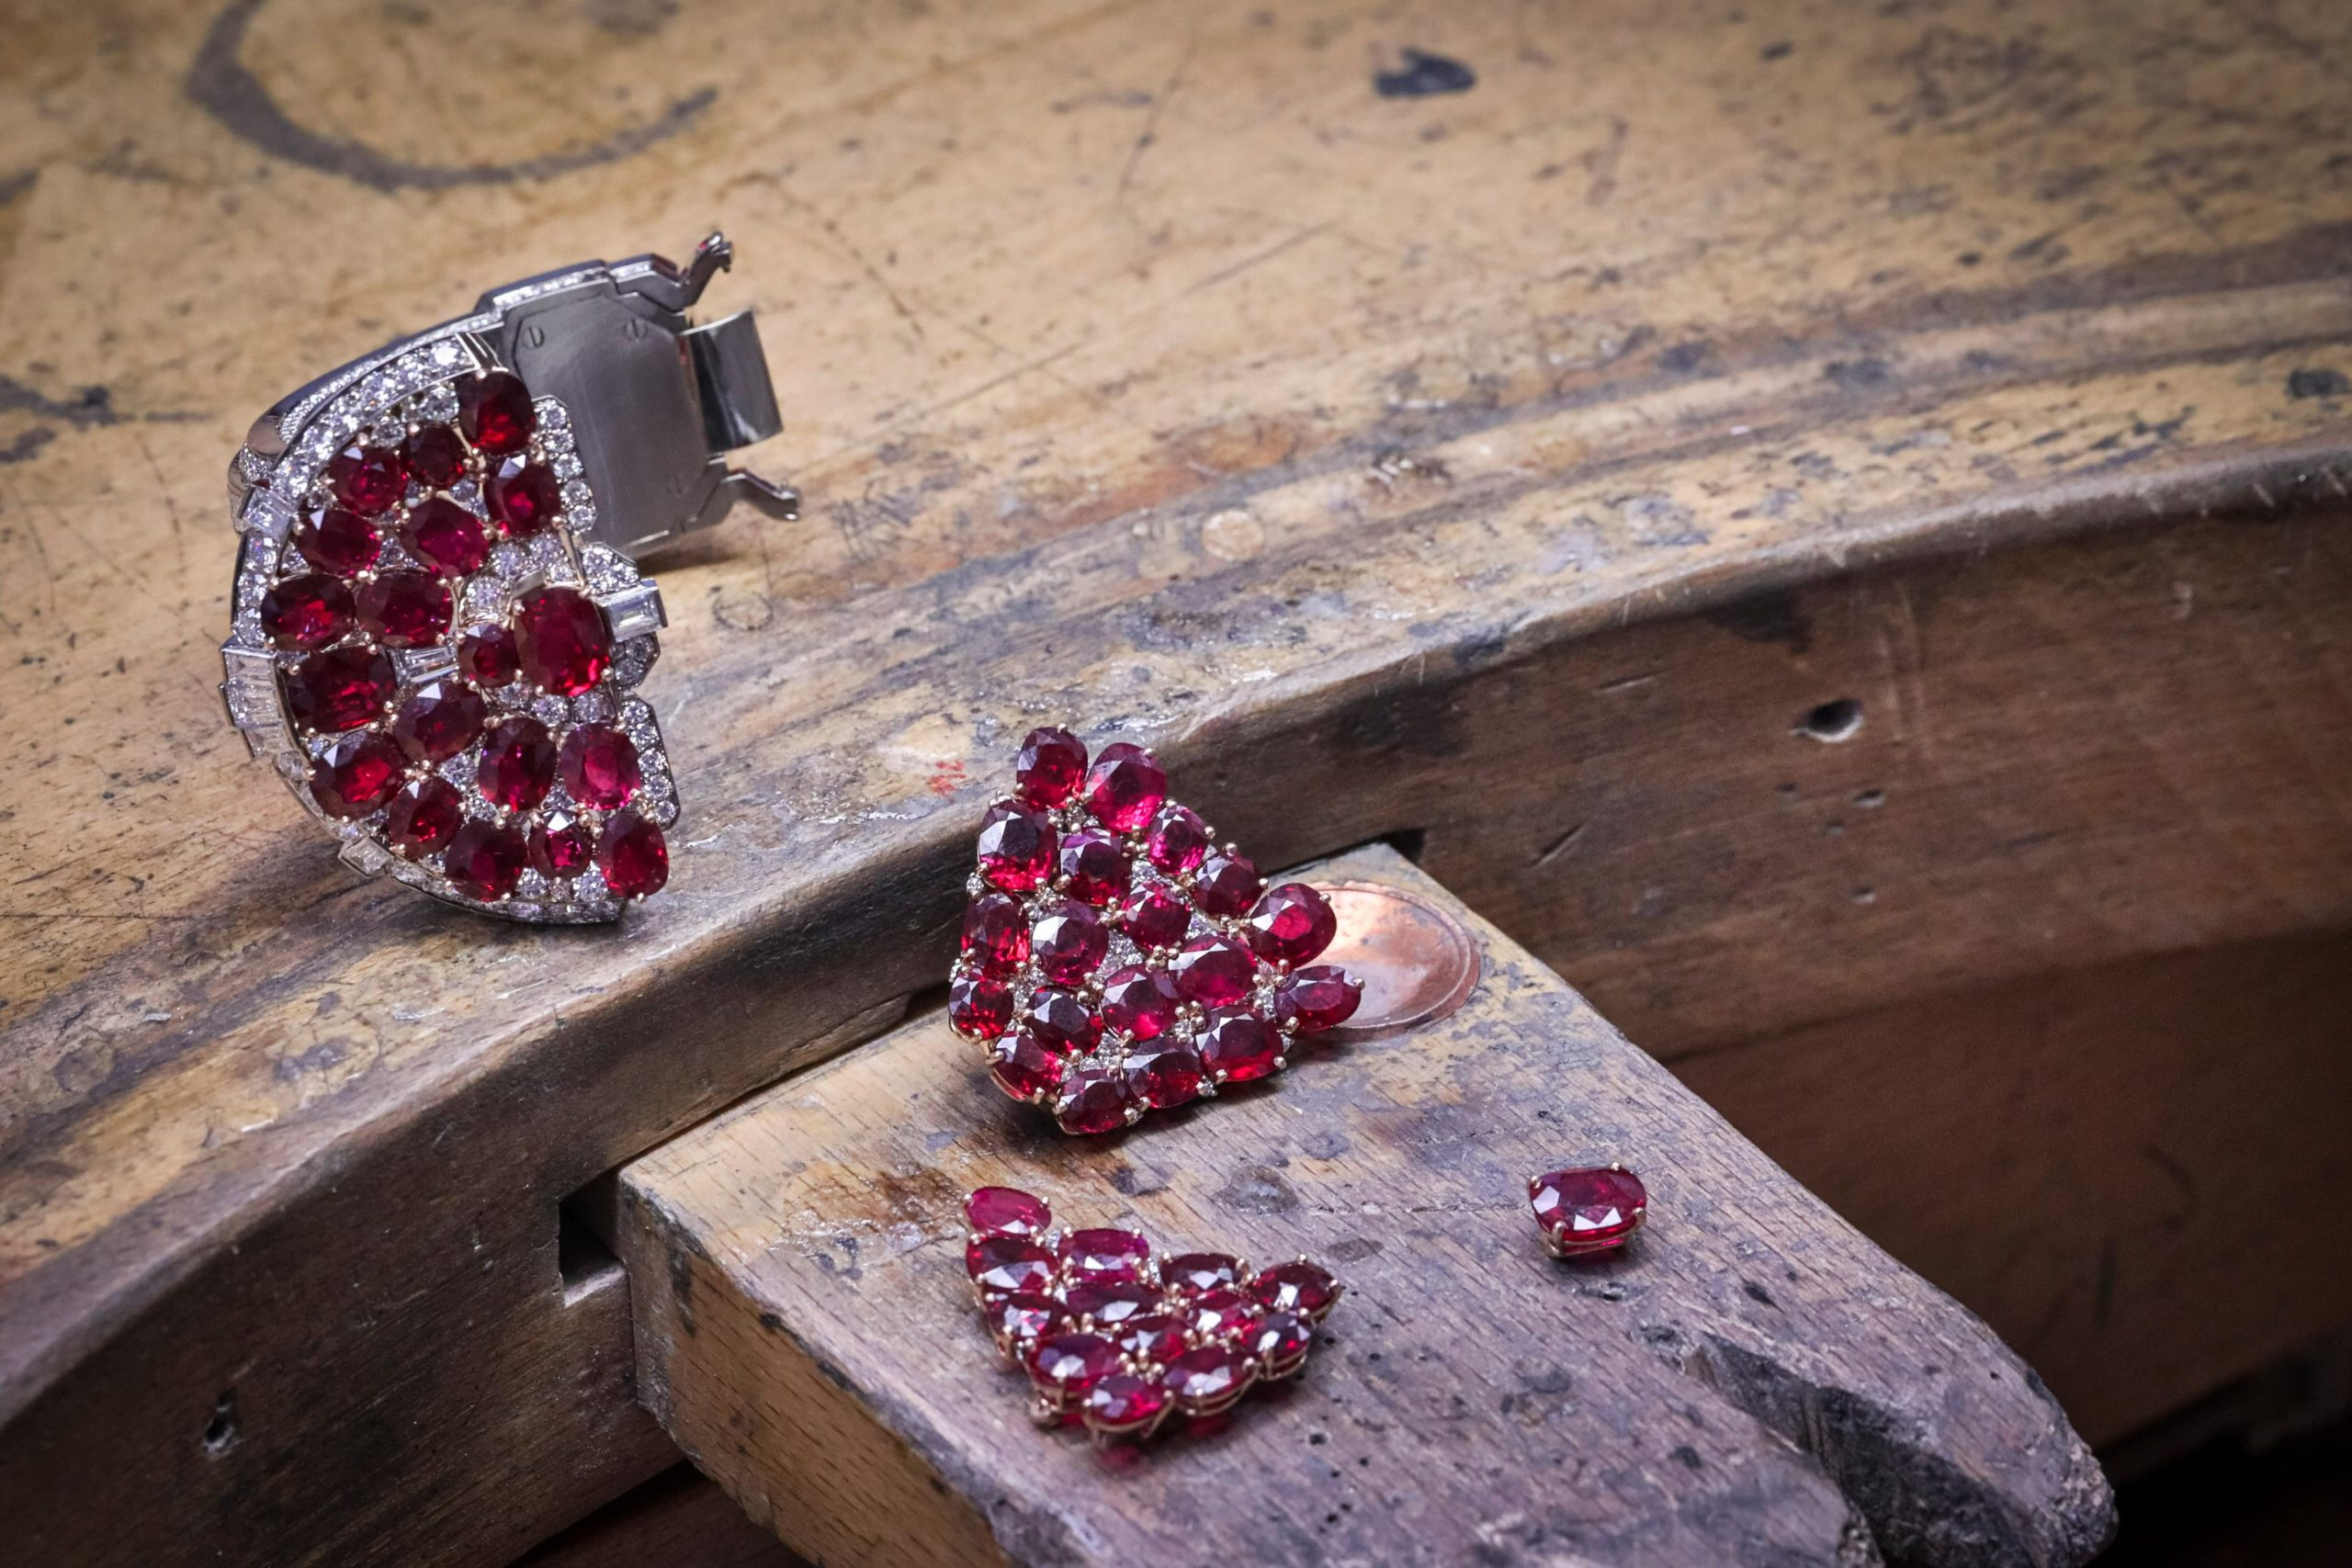 The 72 Burmese rubies in Van Cleef & Arpels' Rubis en Scene high jewellery cuff are set in rose gold prongs to enhance their opulent hue